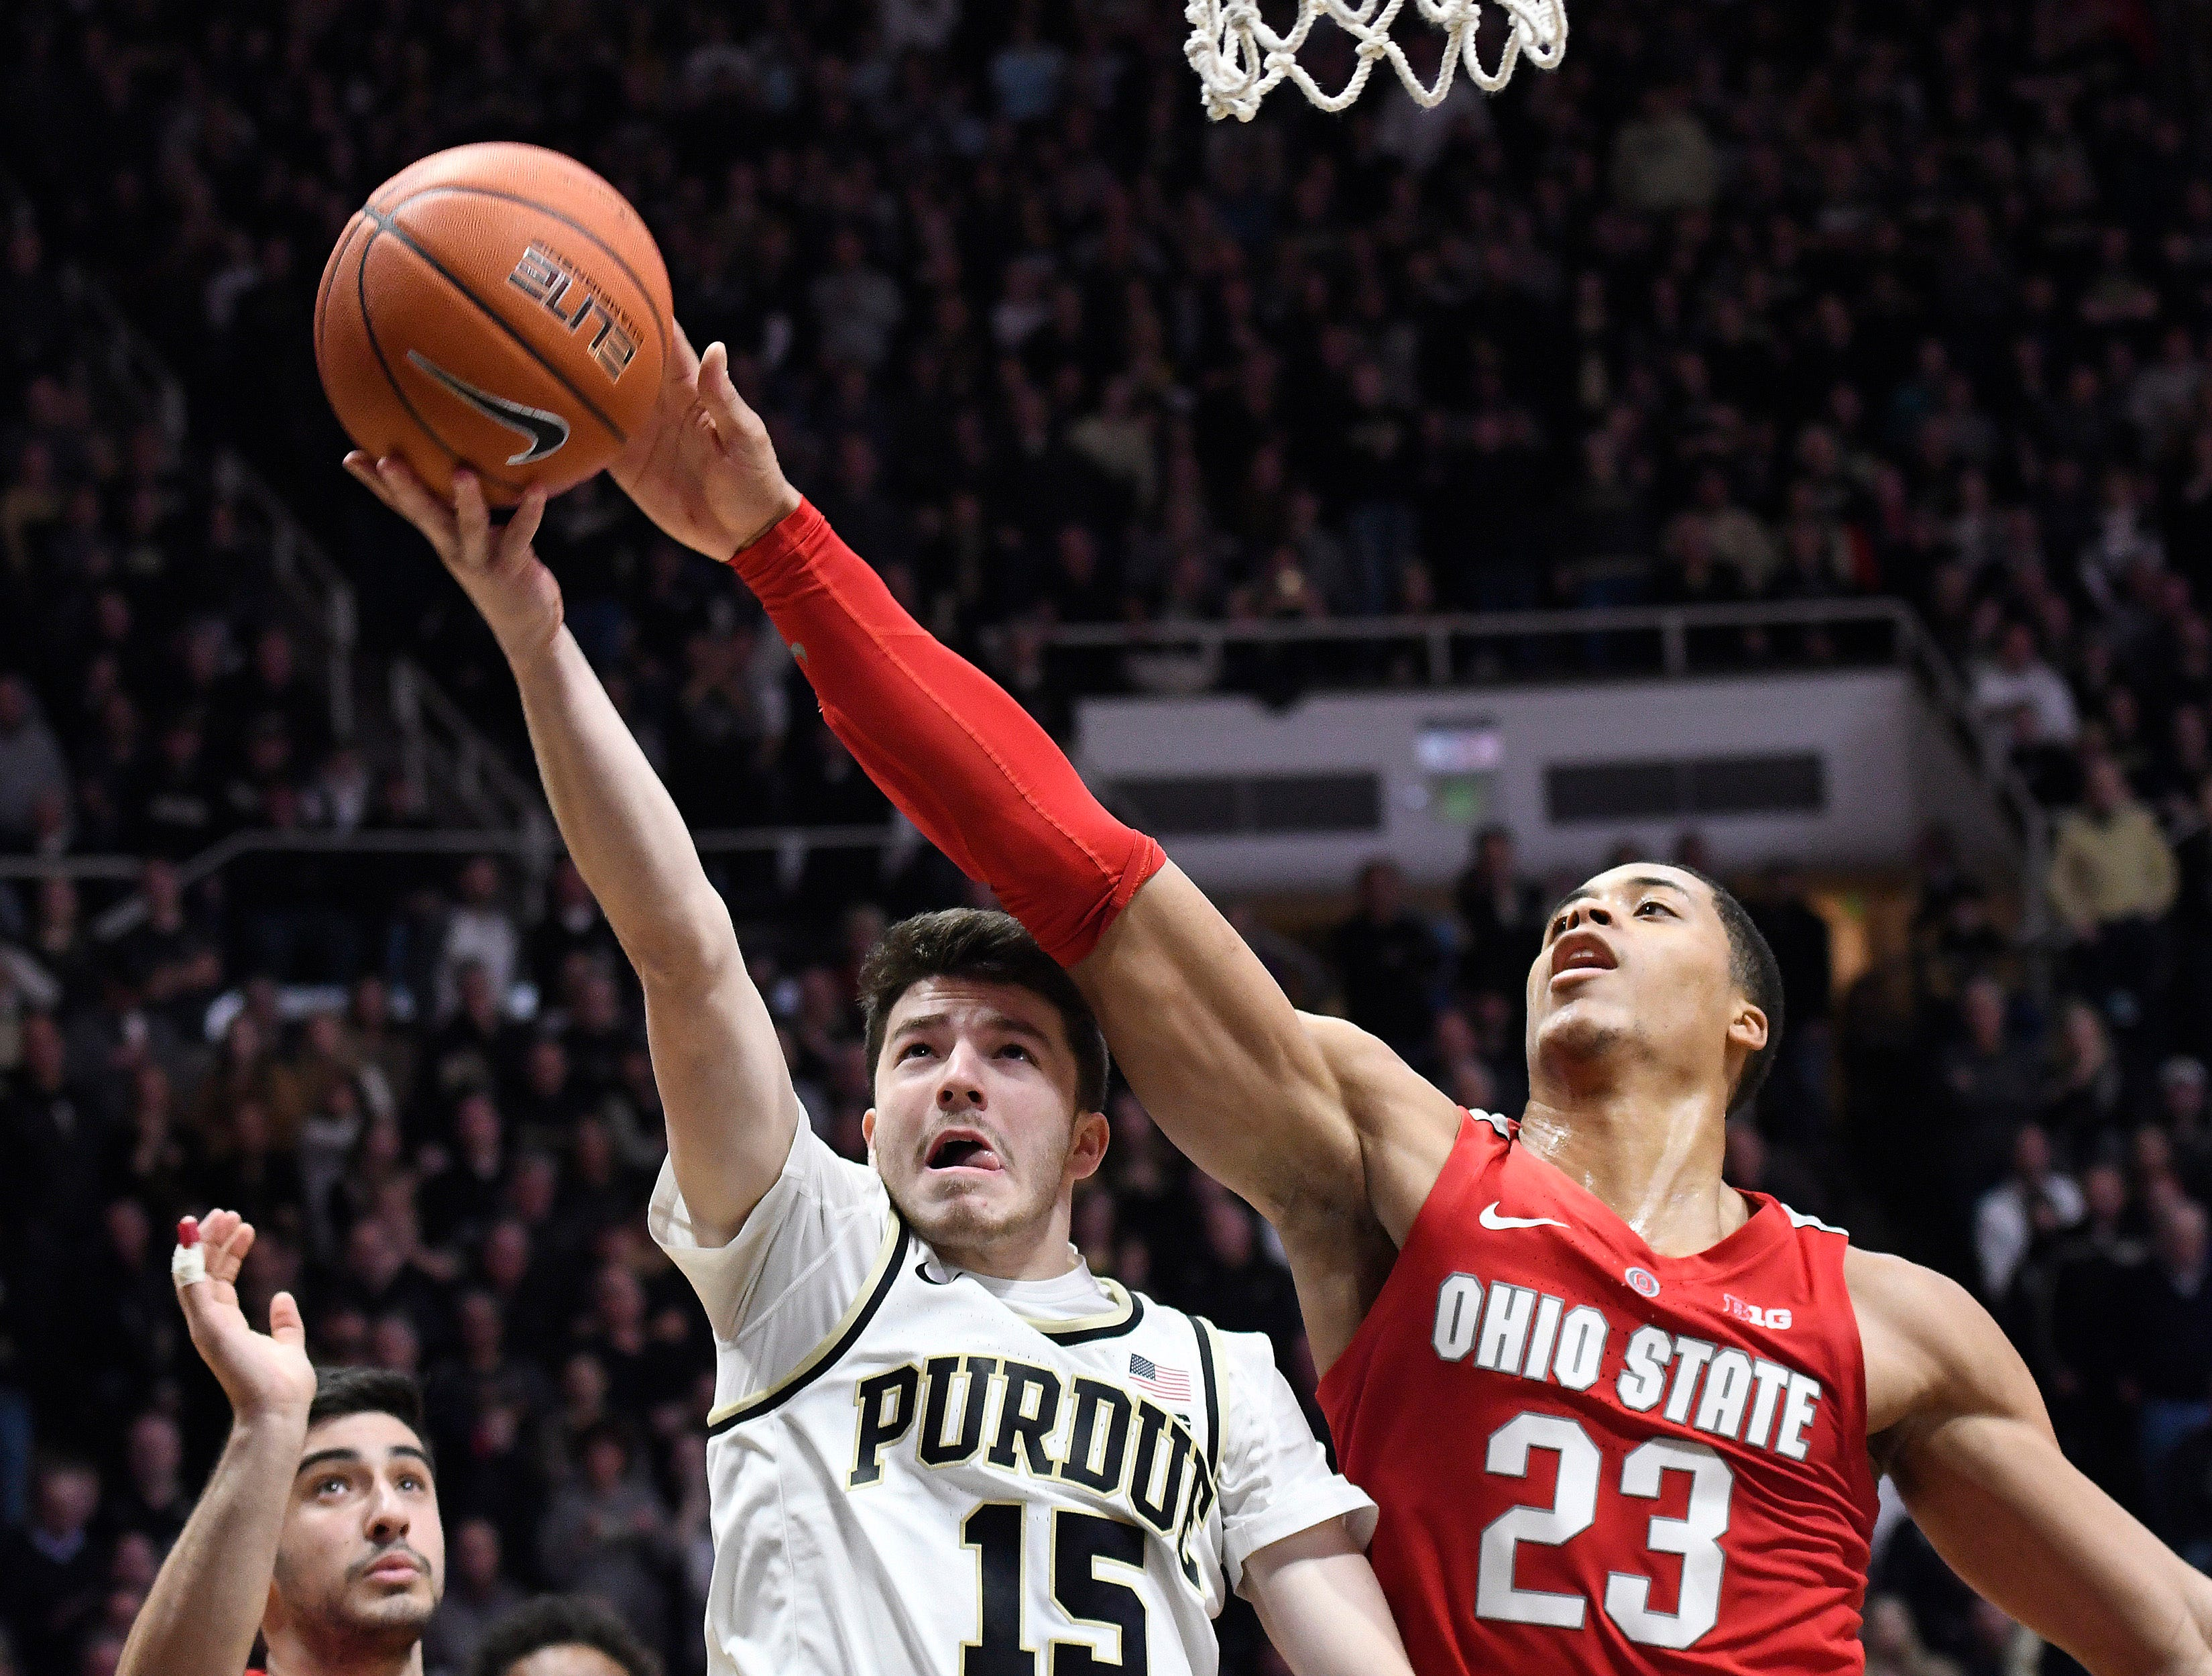 Mar 2, 2019; West Lafayette, IN, USA; Purdue Boilermakers guard Tommy Luce (15) goes for a layup which is swatted away by Ohio State Buckeyes forward Jaedon LeDee (23) in the 2nd half at Mackey Arena. Mandatory Credit: Sandra Dukes-USA TODAY Sports